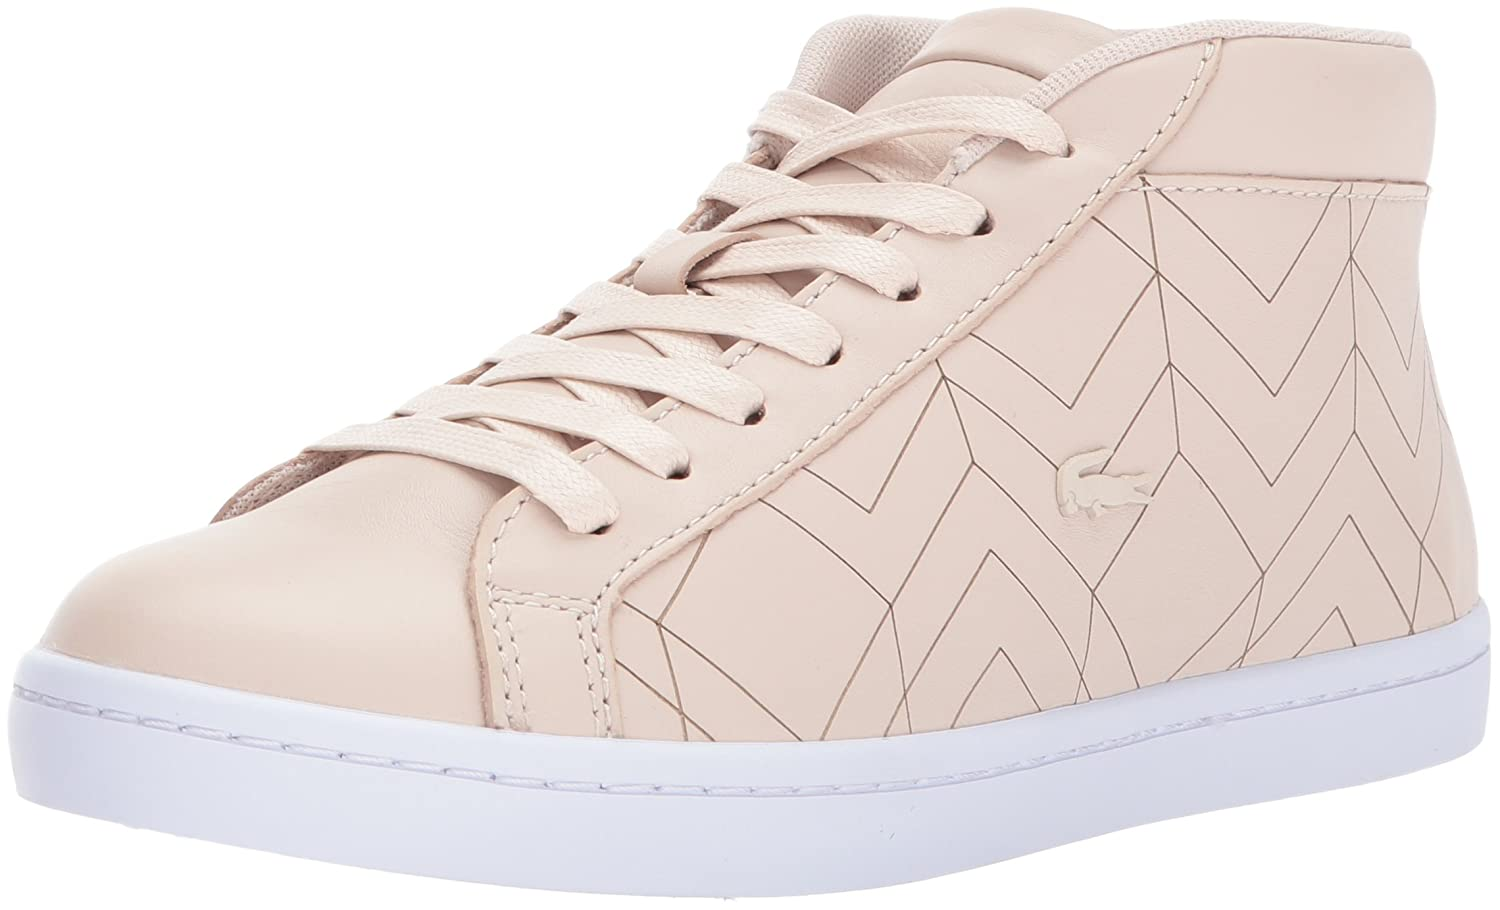 Light Pink Lacoste Womens Straightset Chukka 417 1 Sneakers Sneaker